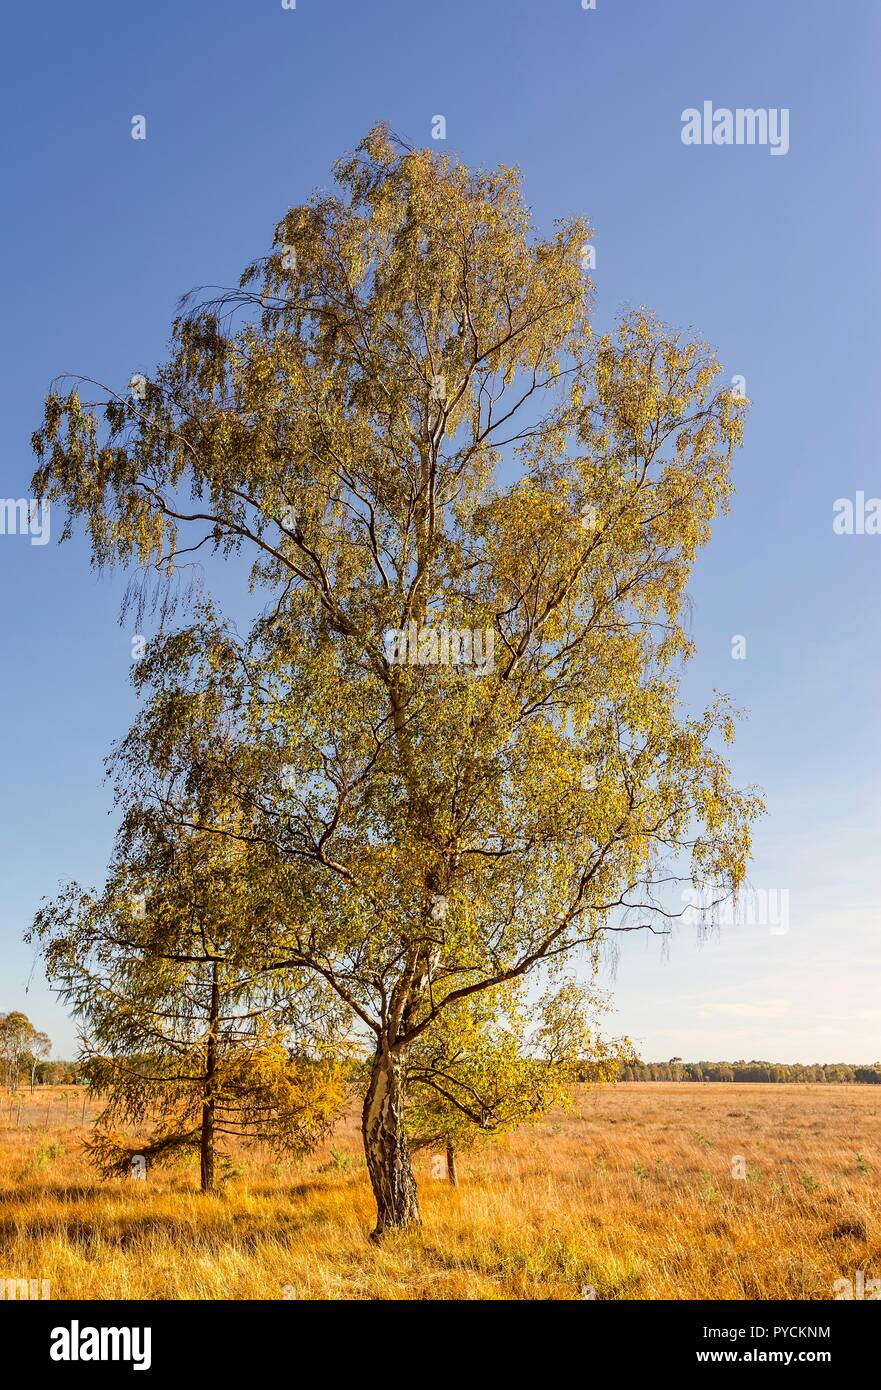 A tall isolated silver birch tree in its autumn colours.  A moorland stretches back to the edge of a woodland and a blue sky is overhead. Stock Photo